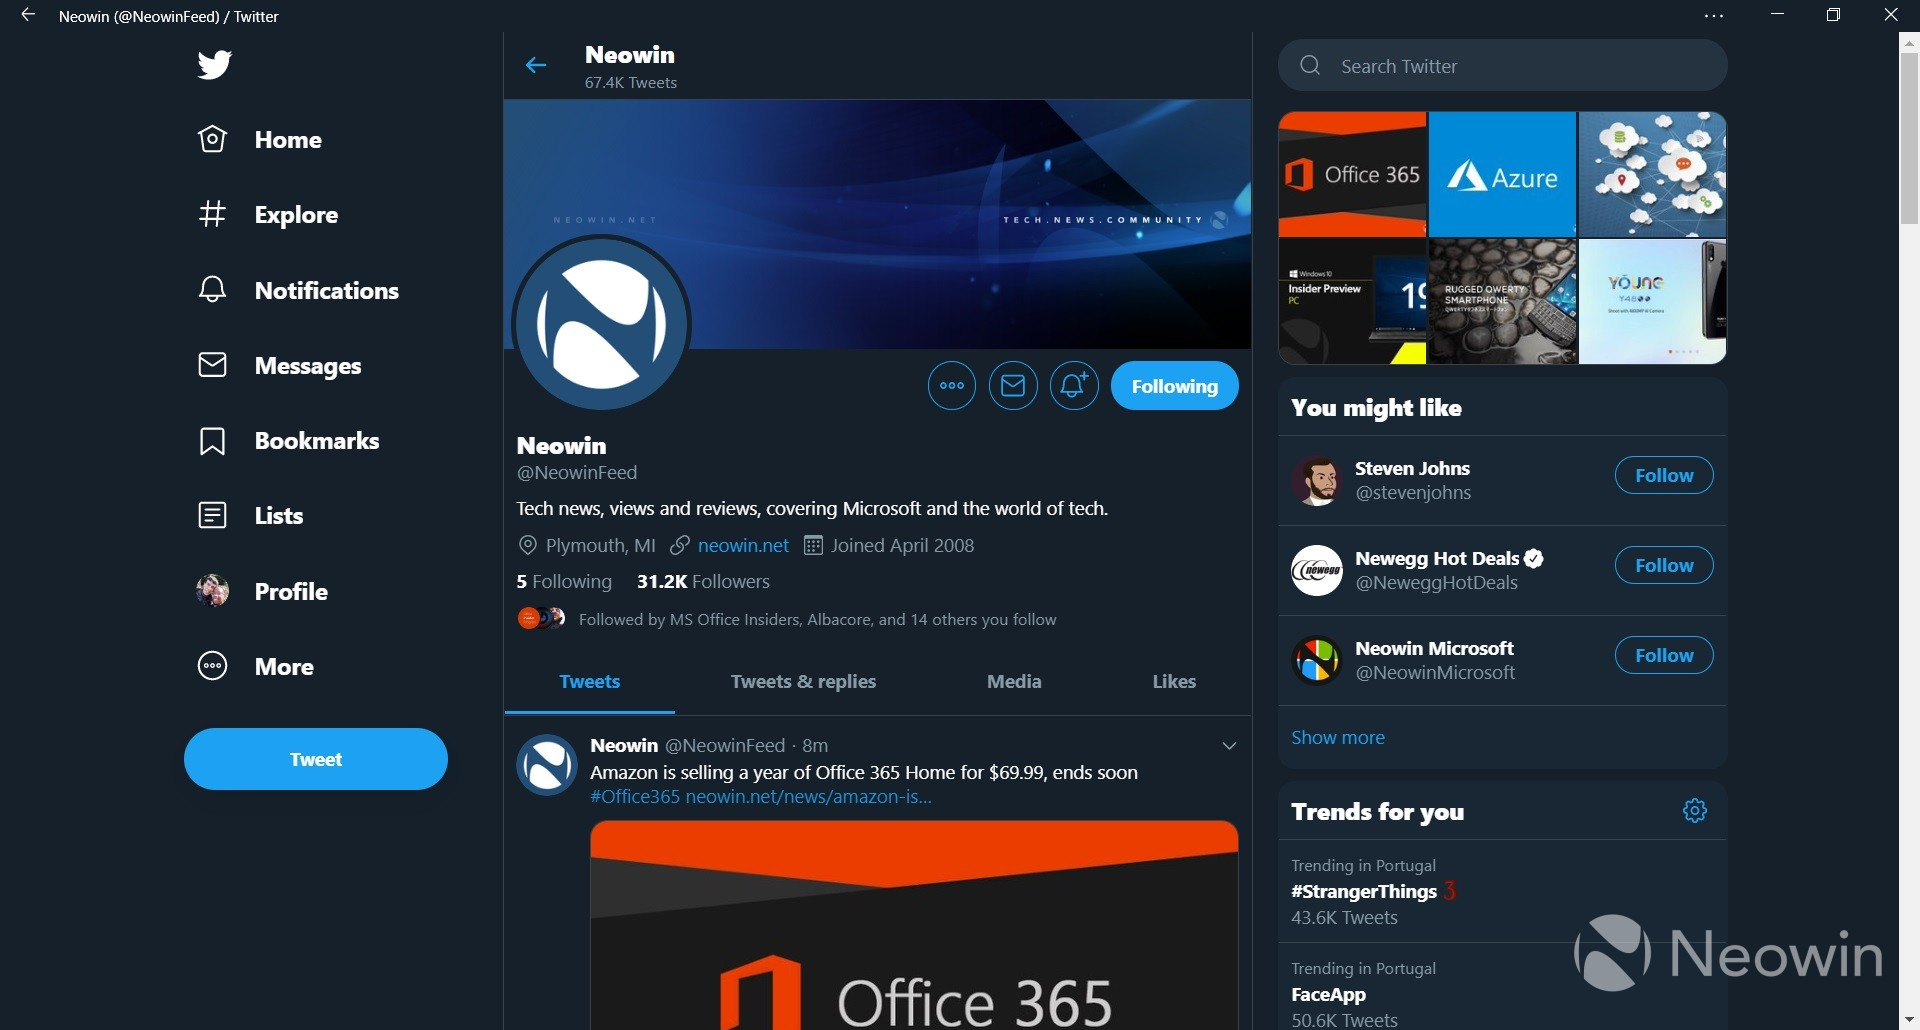 Twitter begins rolling out the new desktop experience based on the PWA